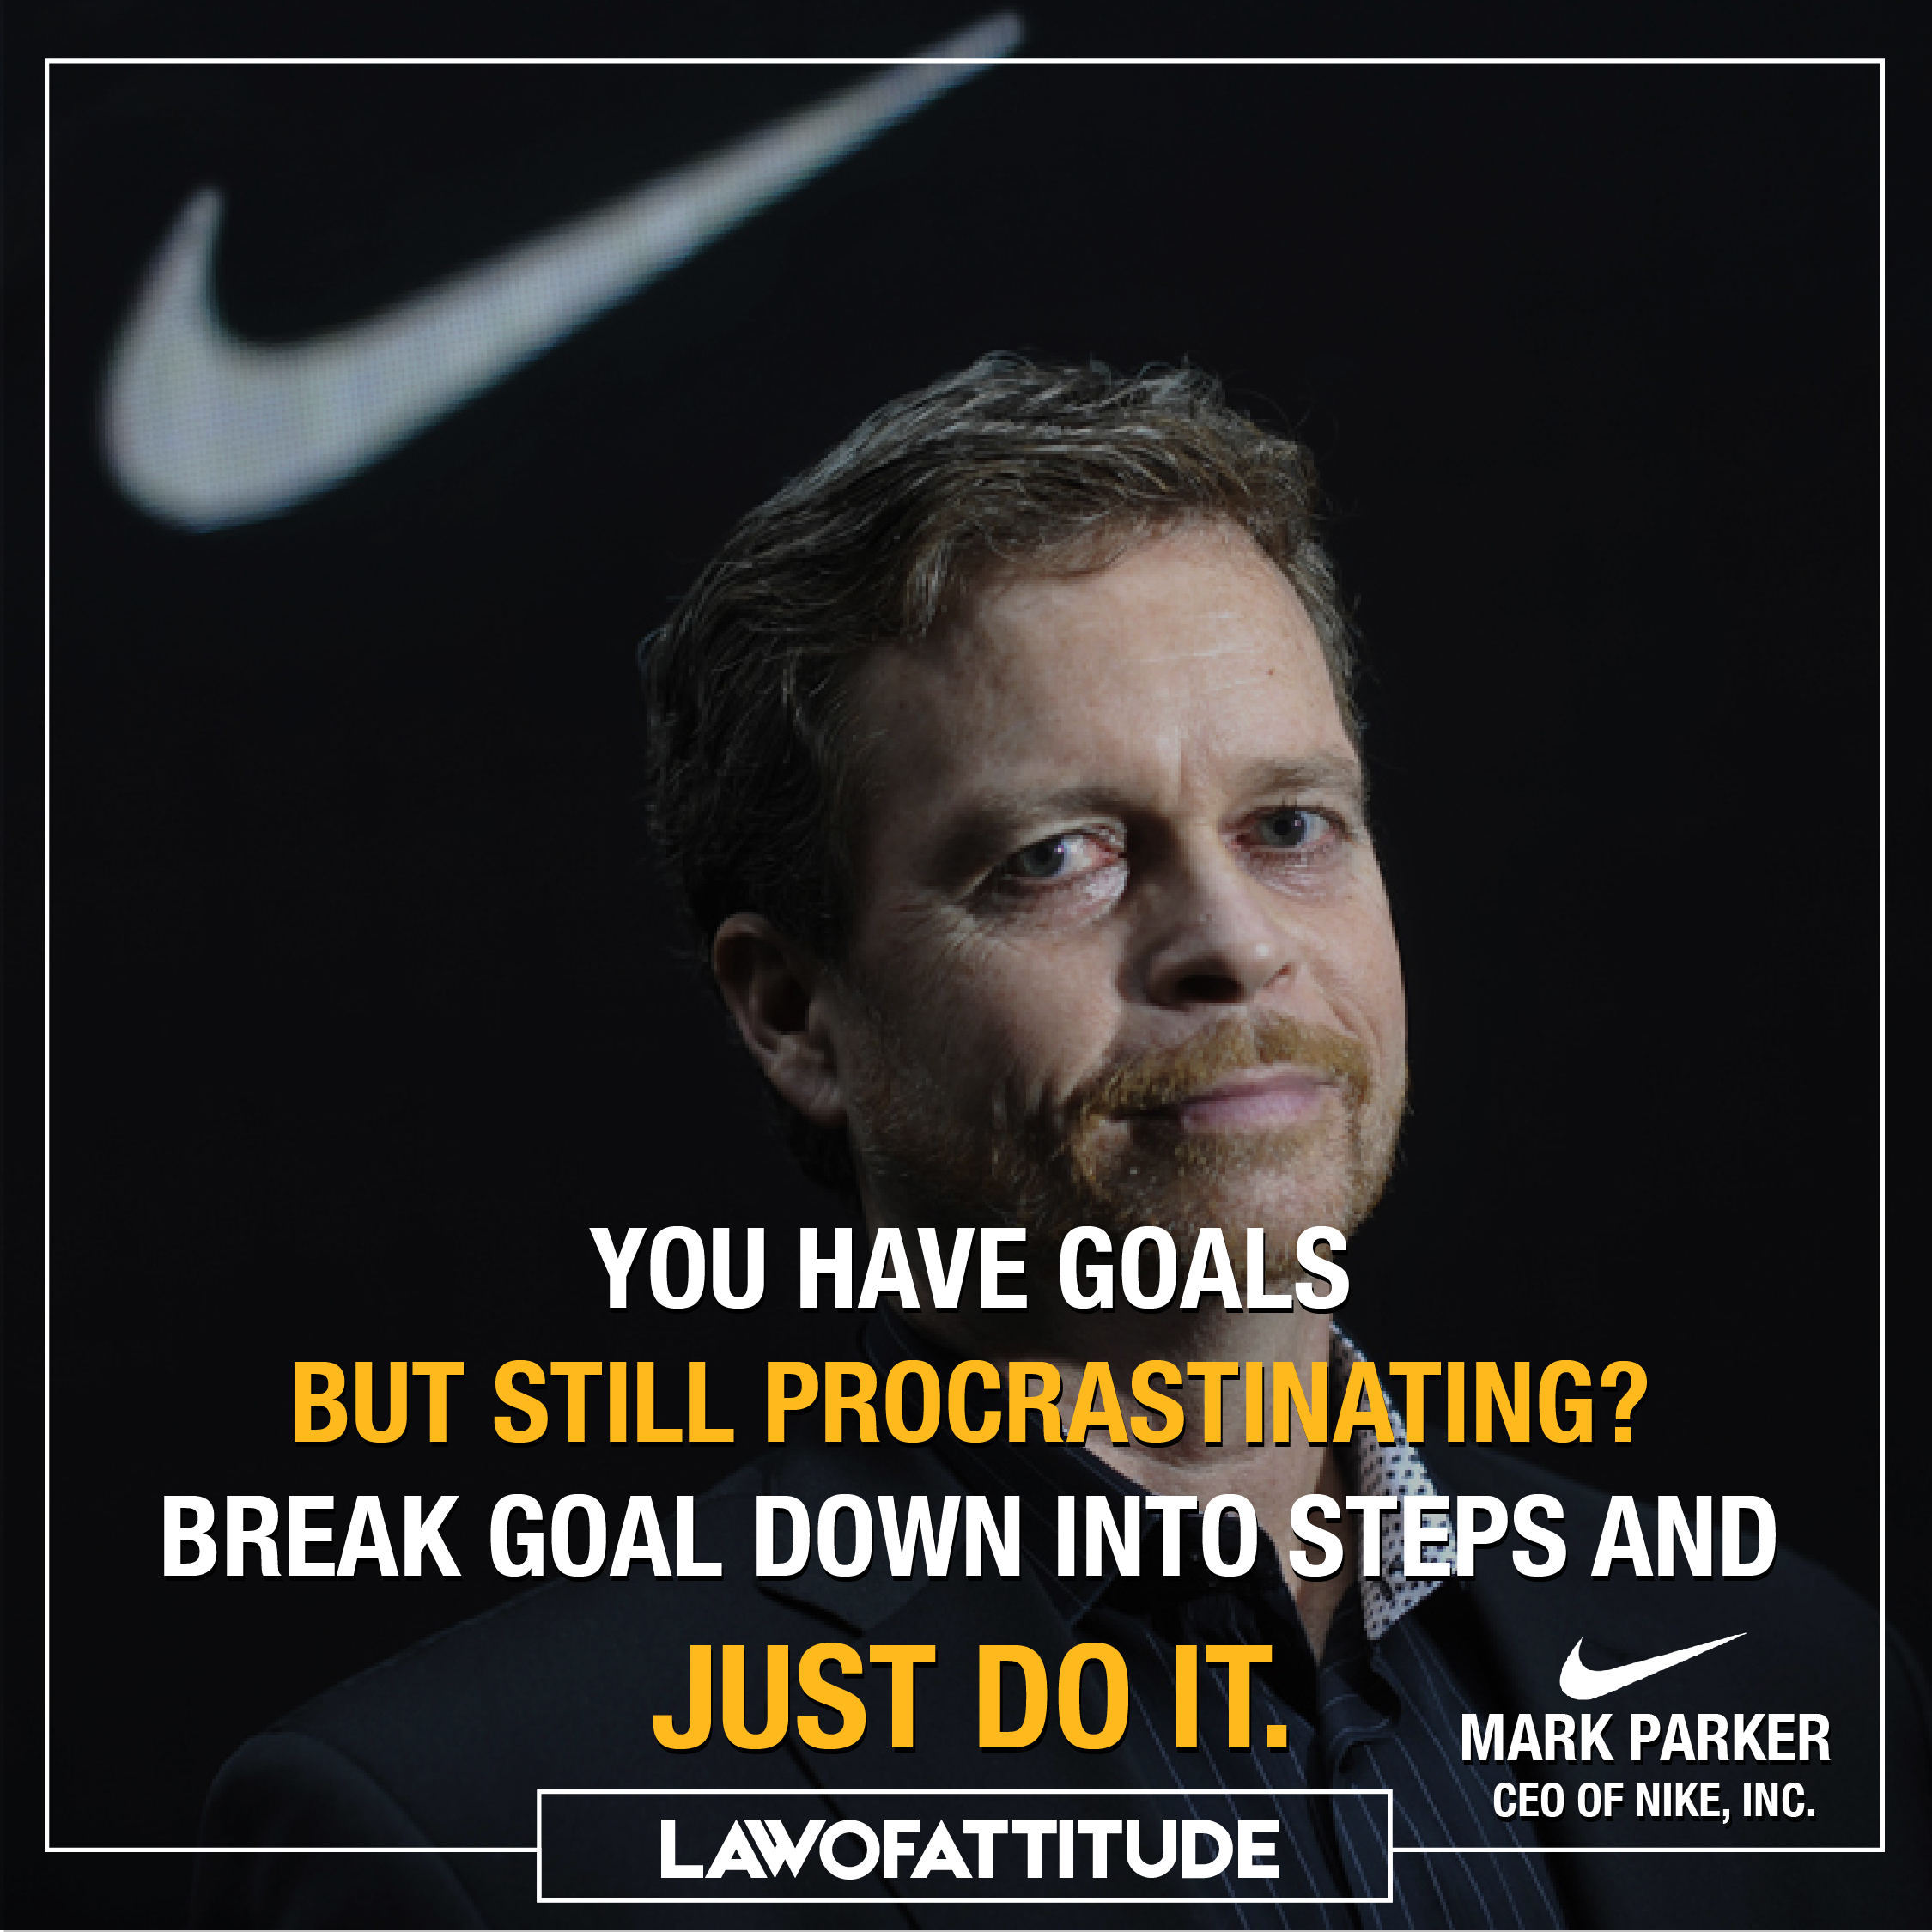 [Image]JUST DO IT.